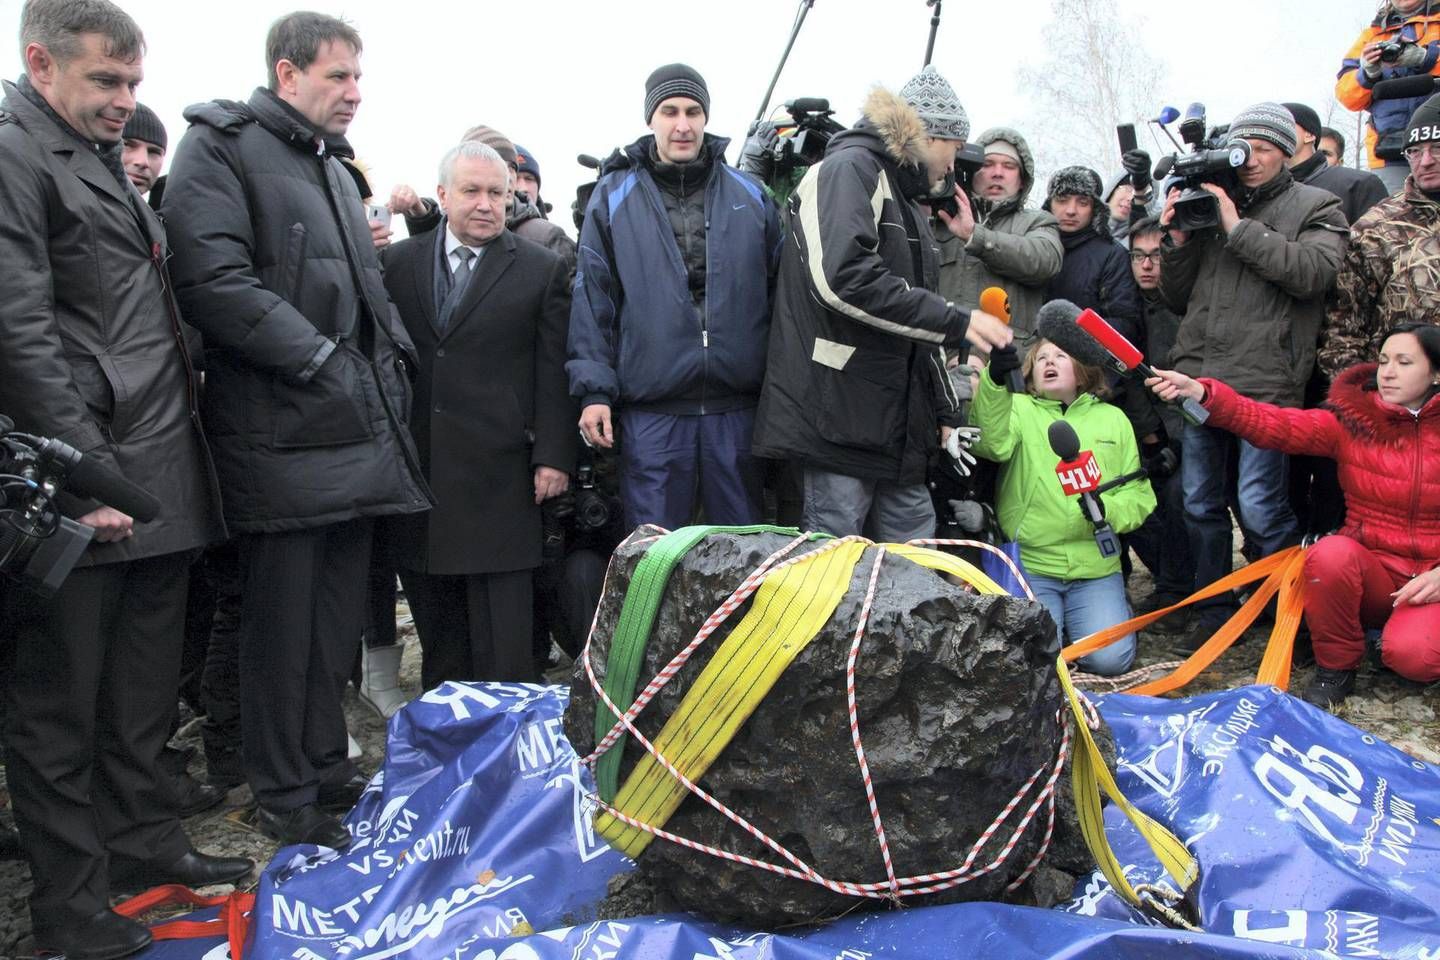 People look at what scientists believe to be a chunk of the Chelyabinsk meteor, recovered from Chebarkul Lake near Chelyabinsk, about 1500 kilometers (930 miles) east of Moscow,  Russia, Wednesday, Oct. 16, 2013. Scientists on Wednesday recovered what could be the largest part of this meteor from Chebarkul Lake outside the city. They weighed it using a giant steelyard balance, which displayed 570 kilograms (1,256 pounds) before it broke. (AP Photo/Alexander Firsov)